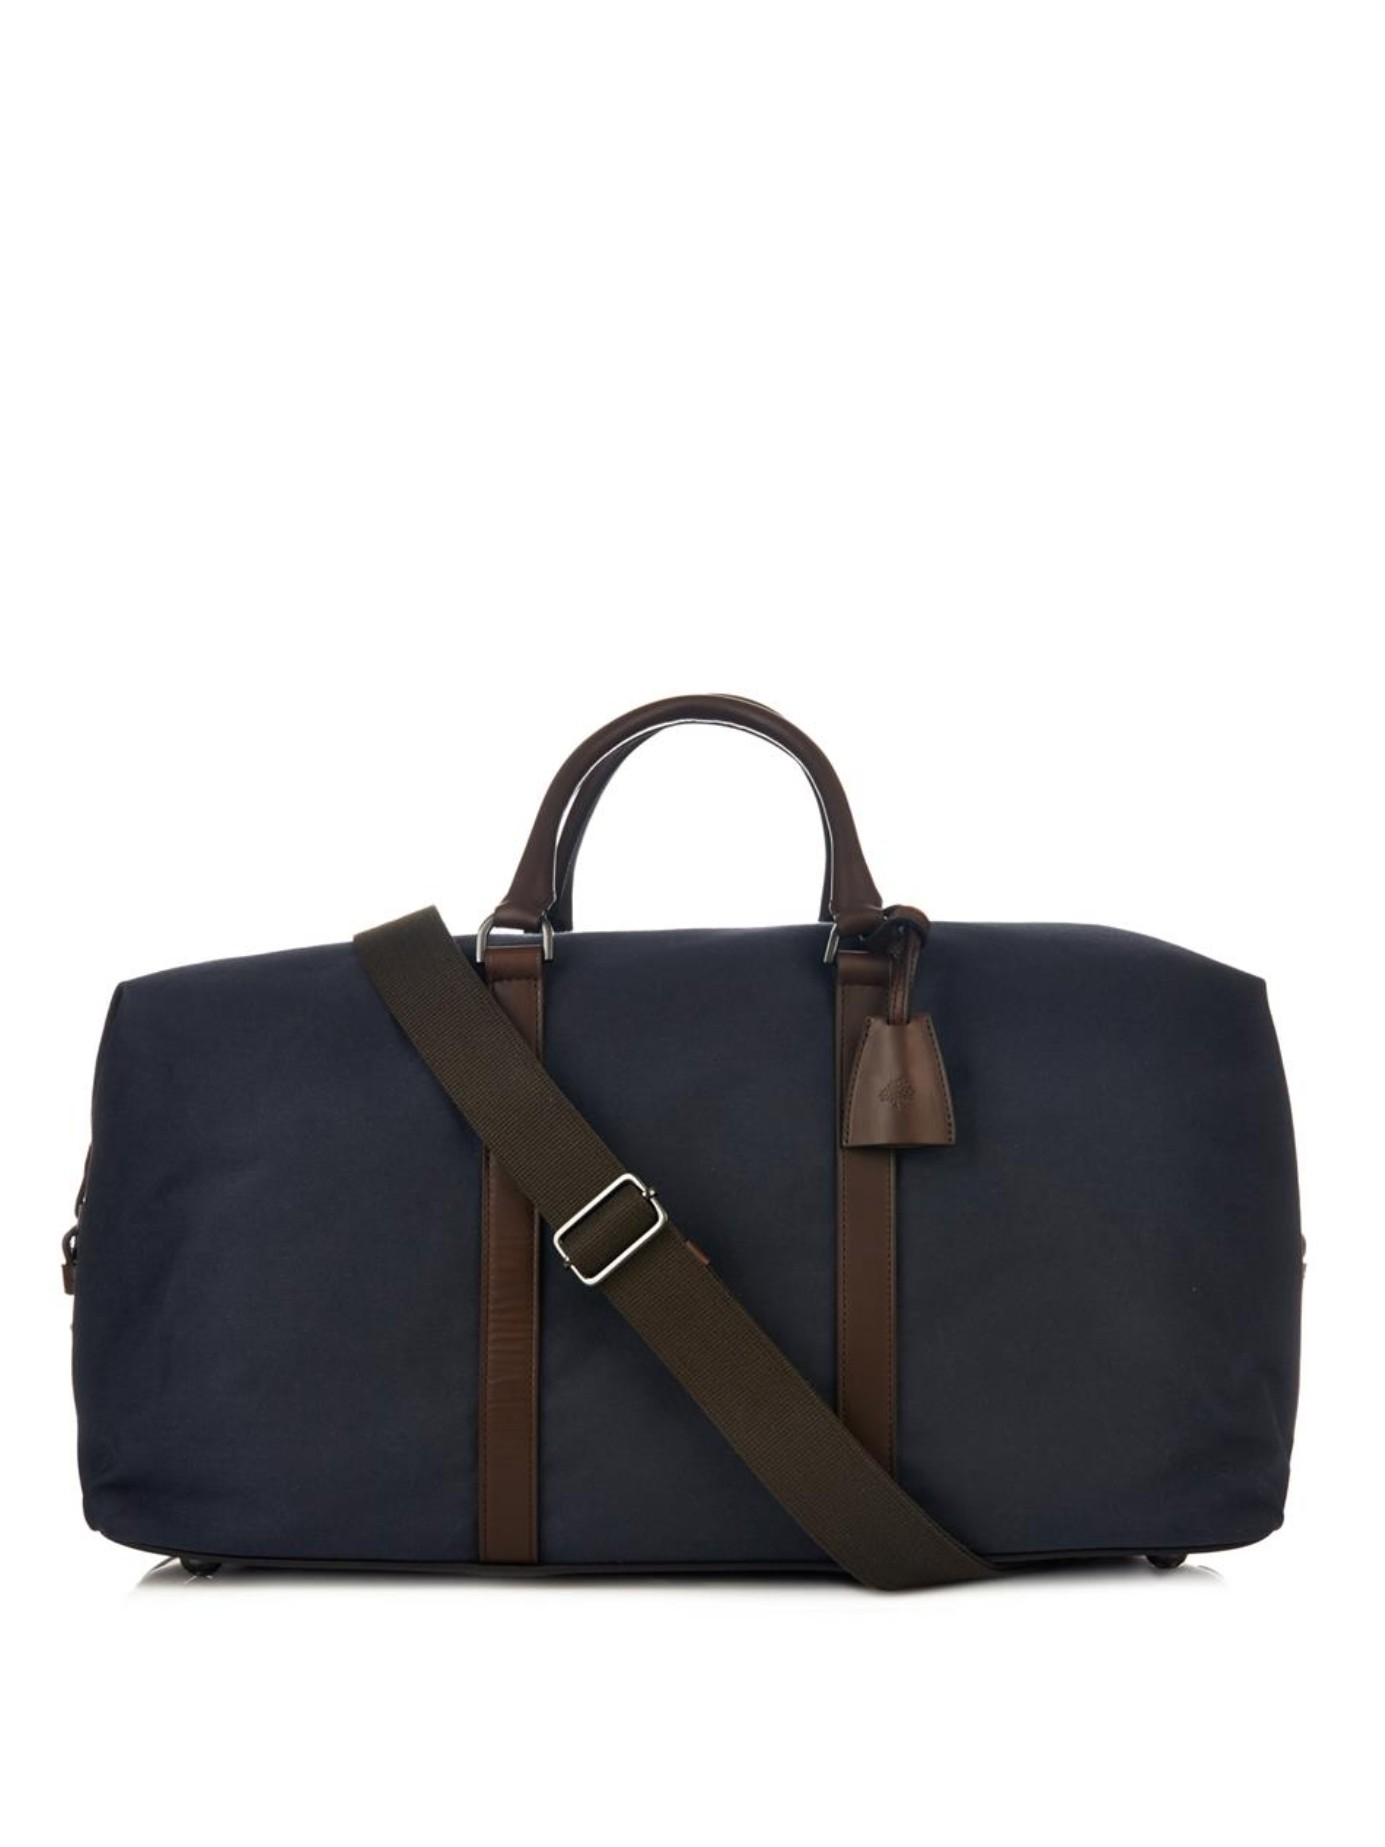 583c0a0d18 Lyst - Mulberry Clipper Refined-Canvas Weekend Bag in Blue for Men